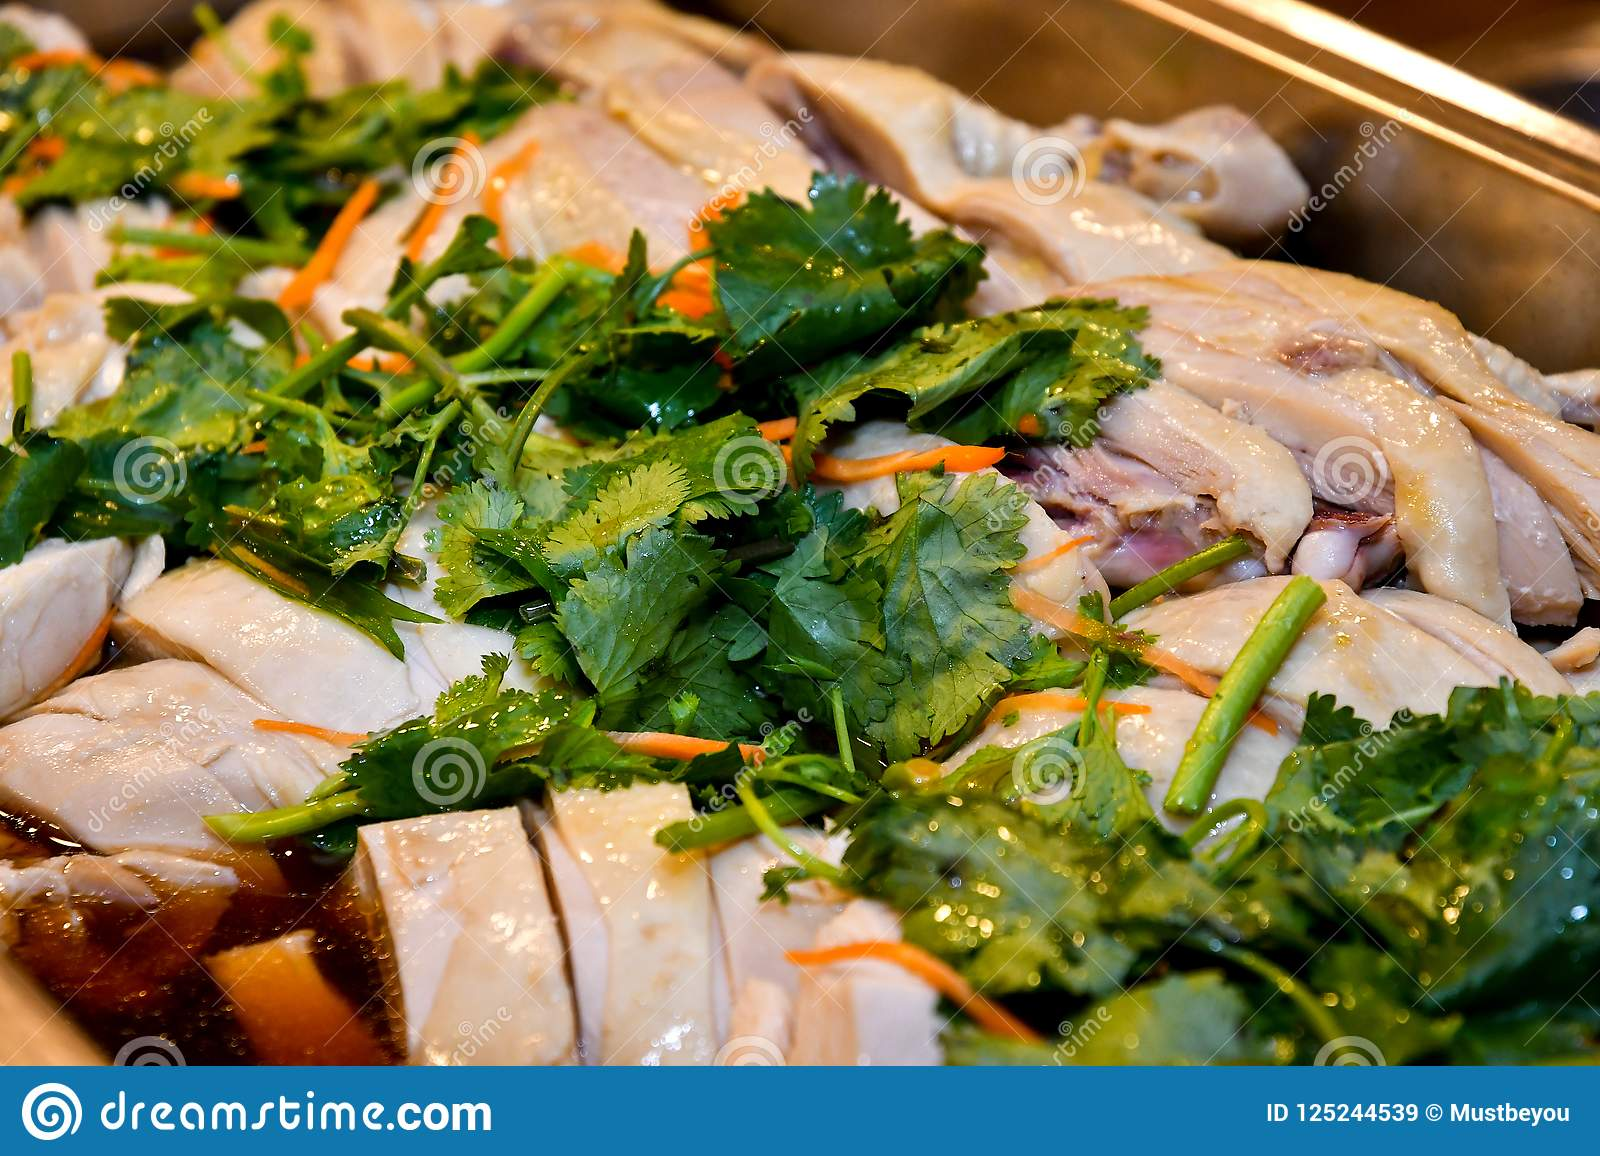 Singapore Local Chinese Cuisine Stock Image - Image of eggs